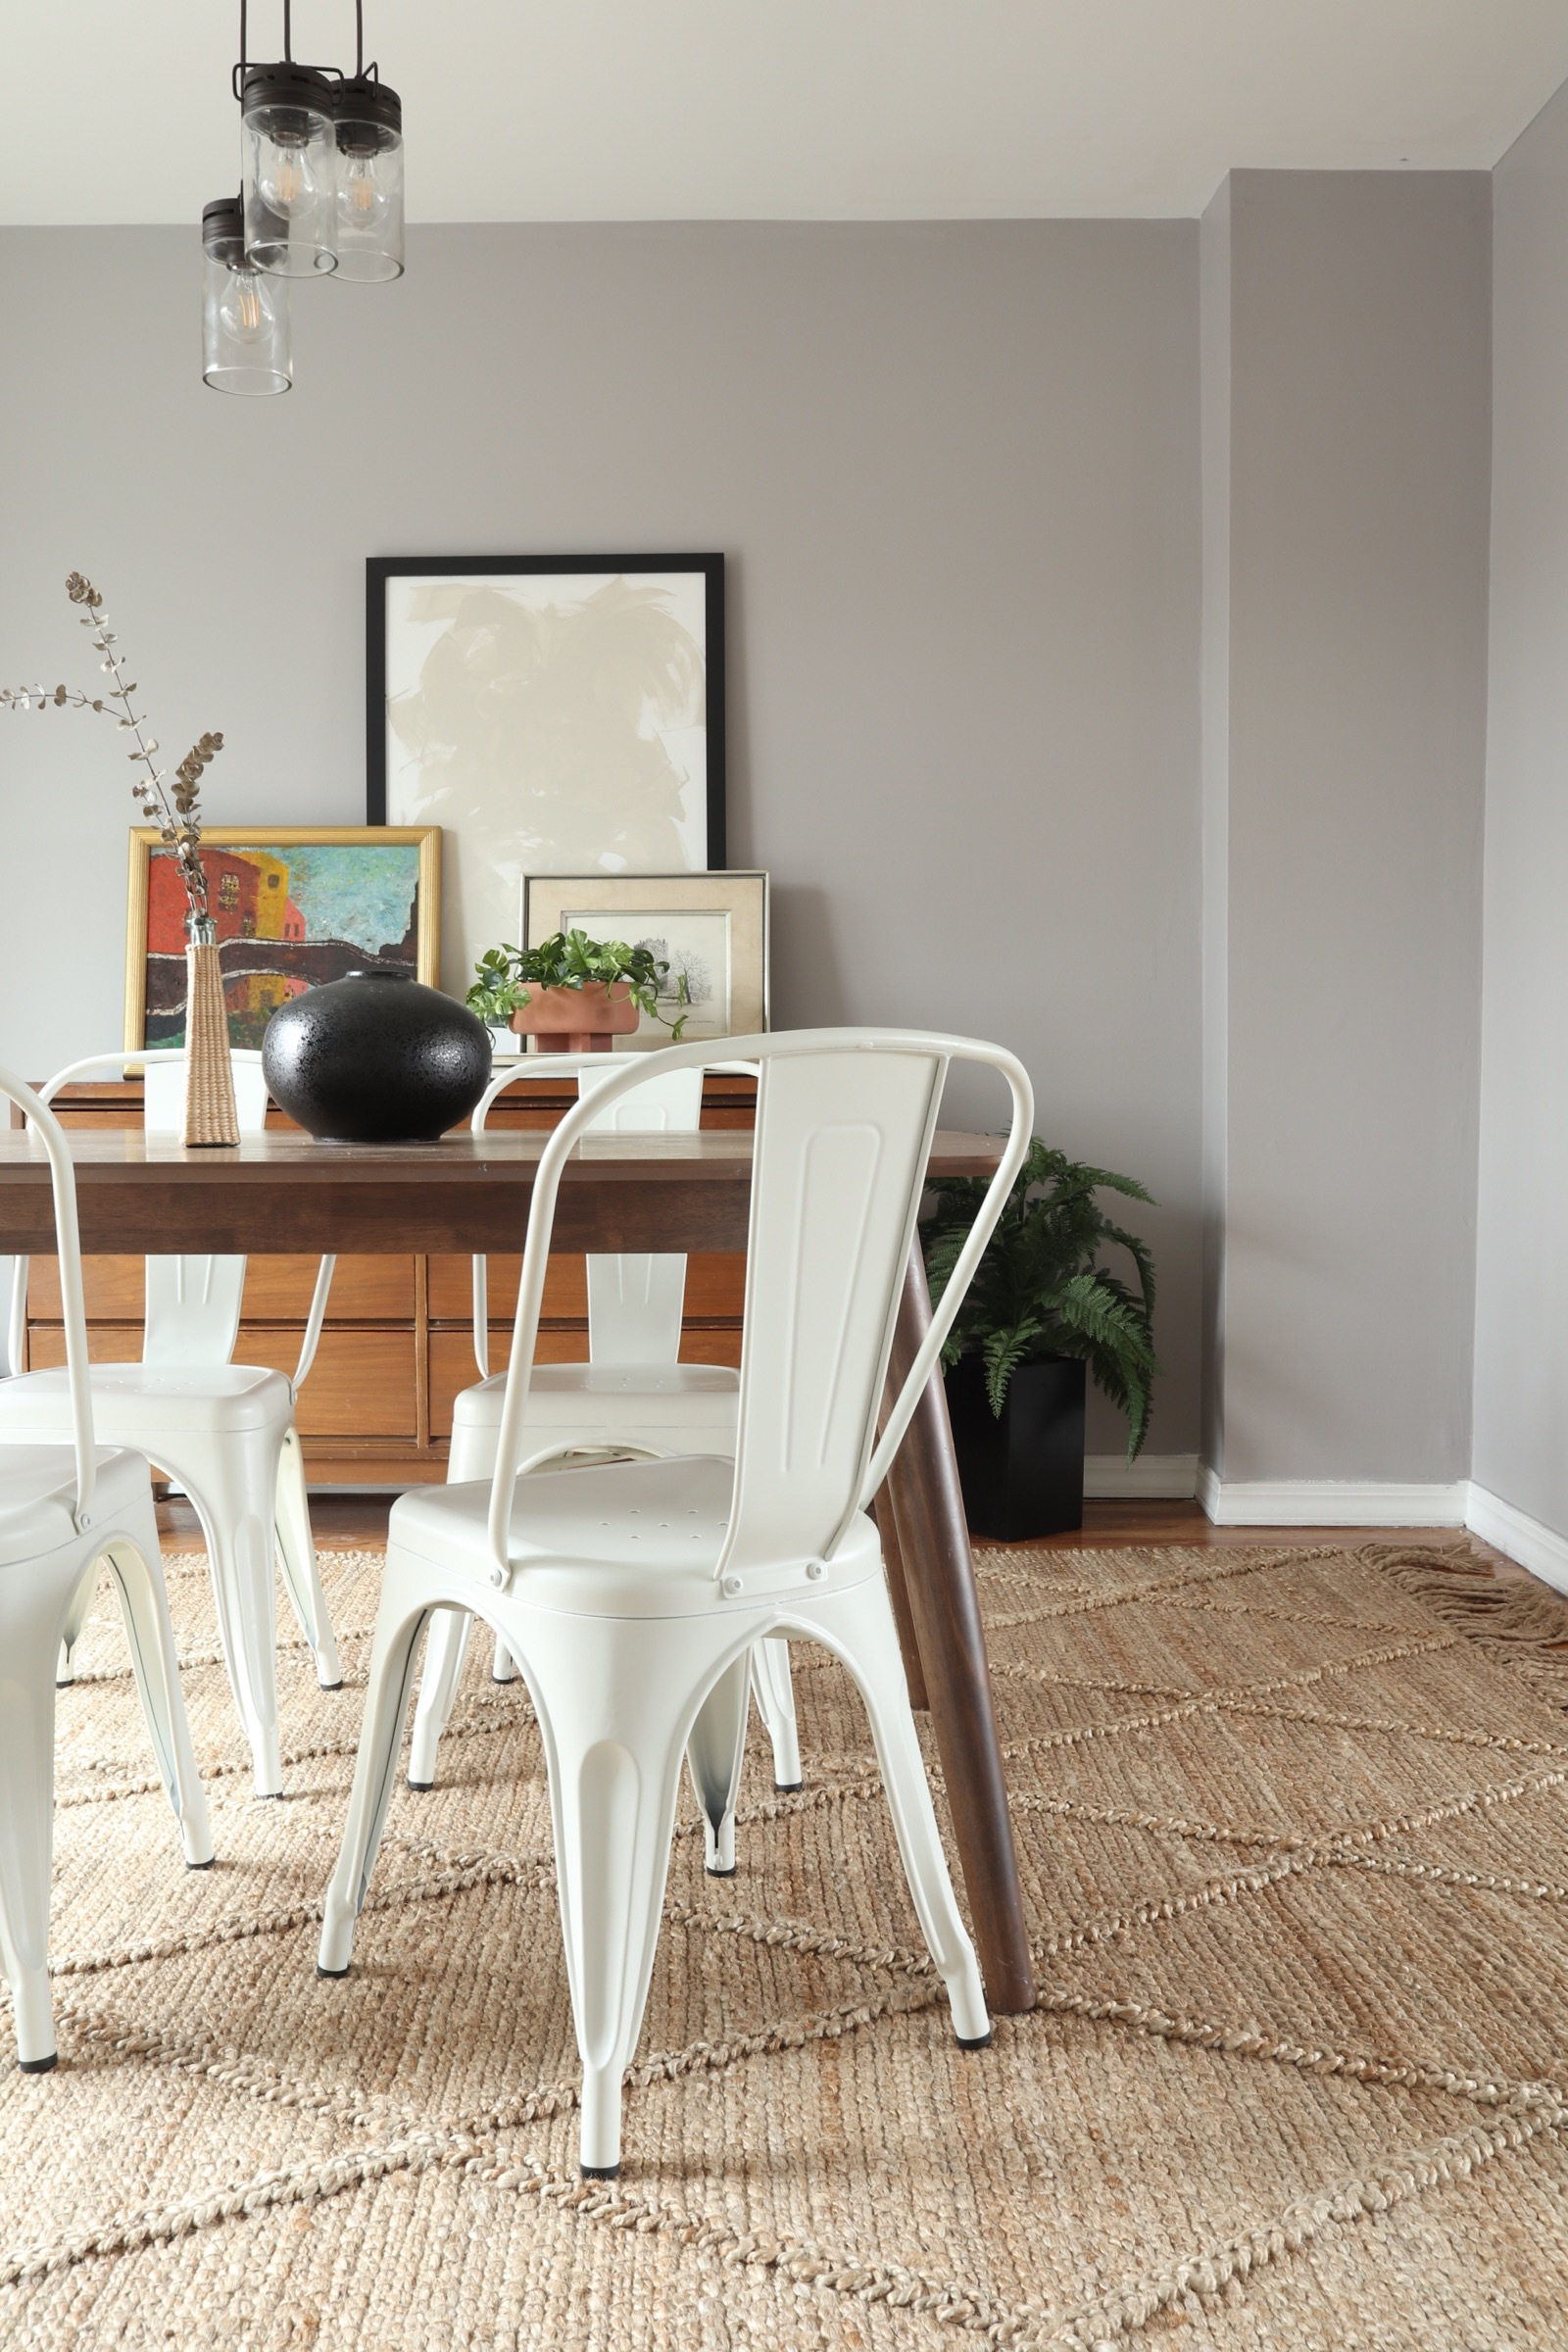 Dining-room-from-kitchen.JPG